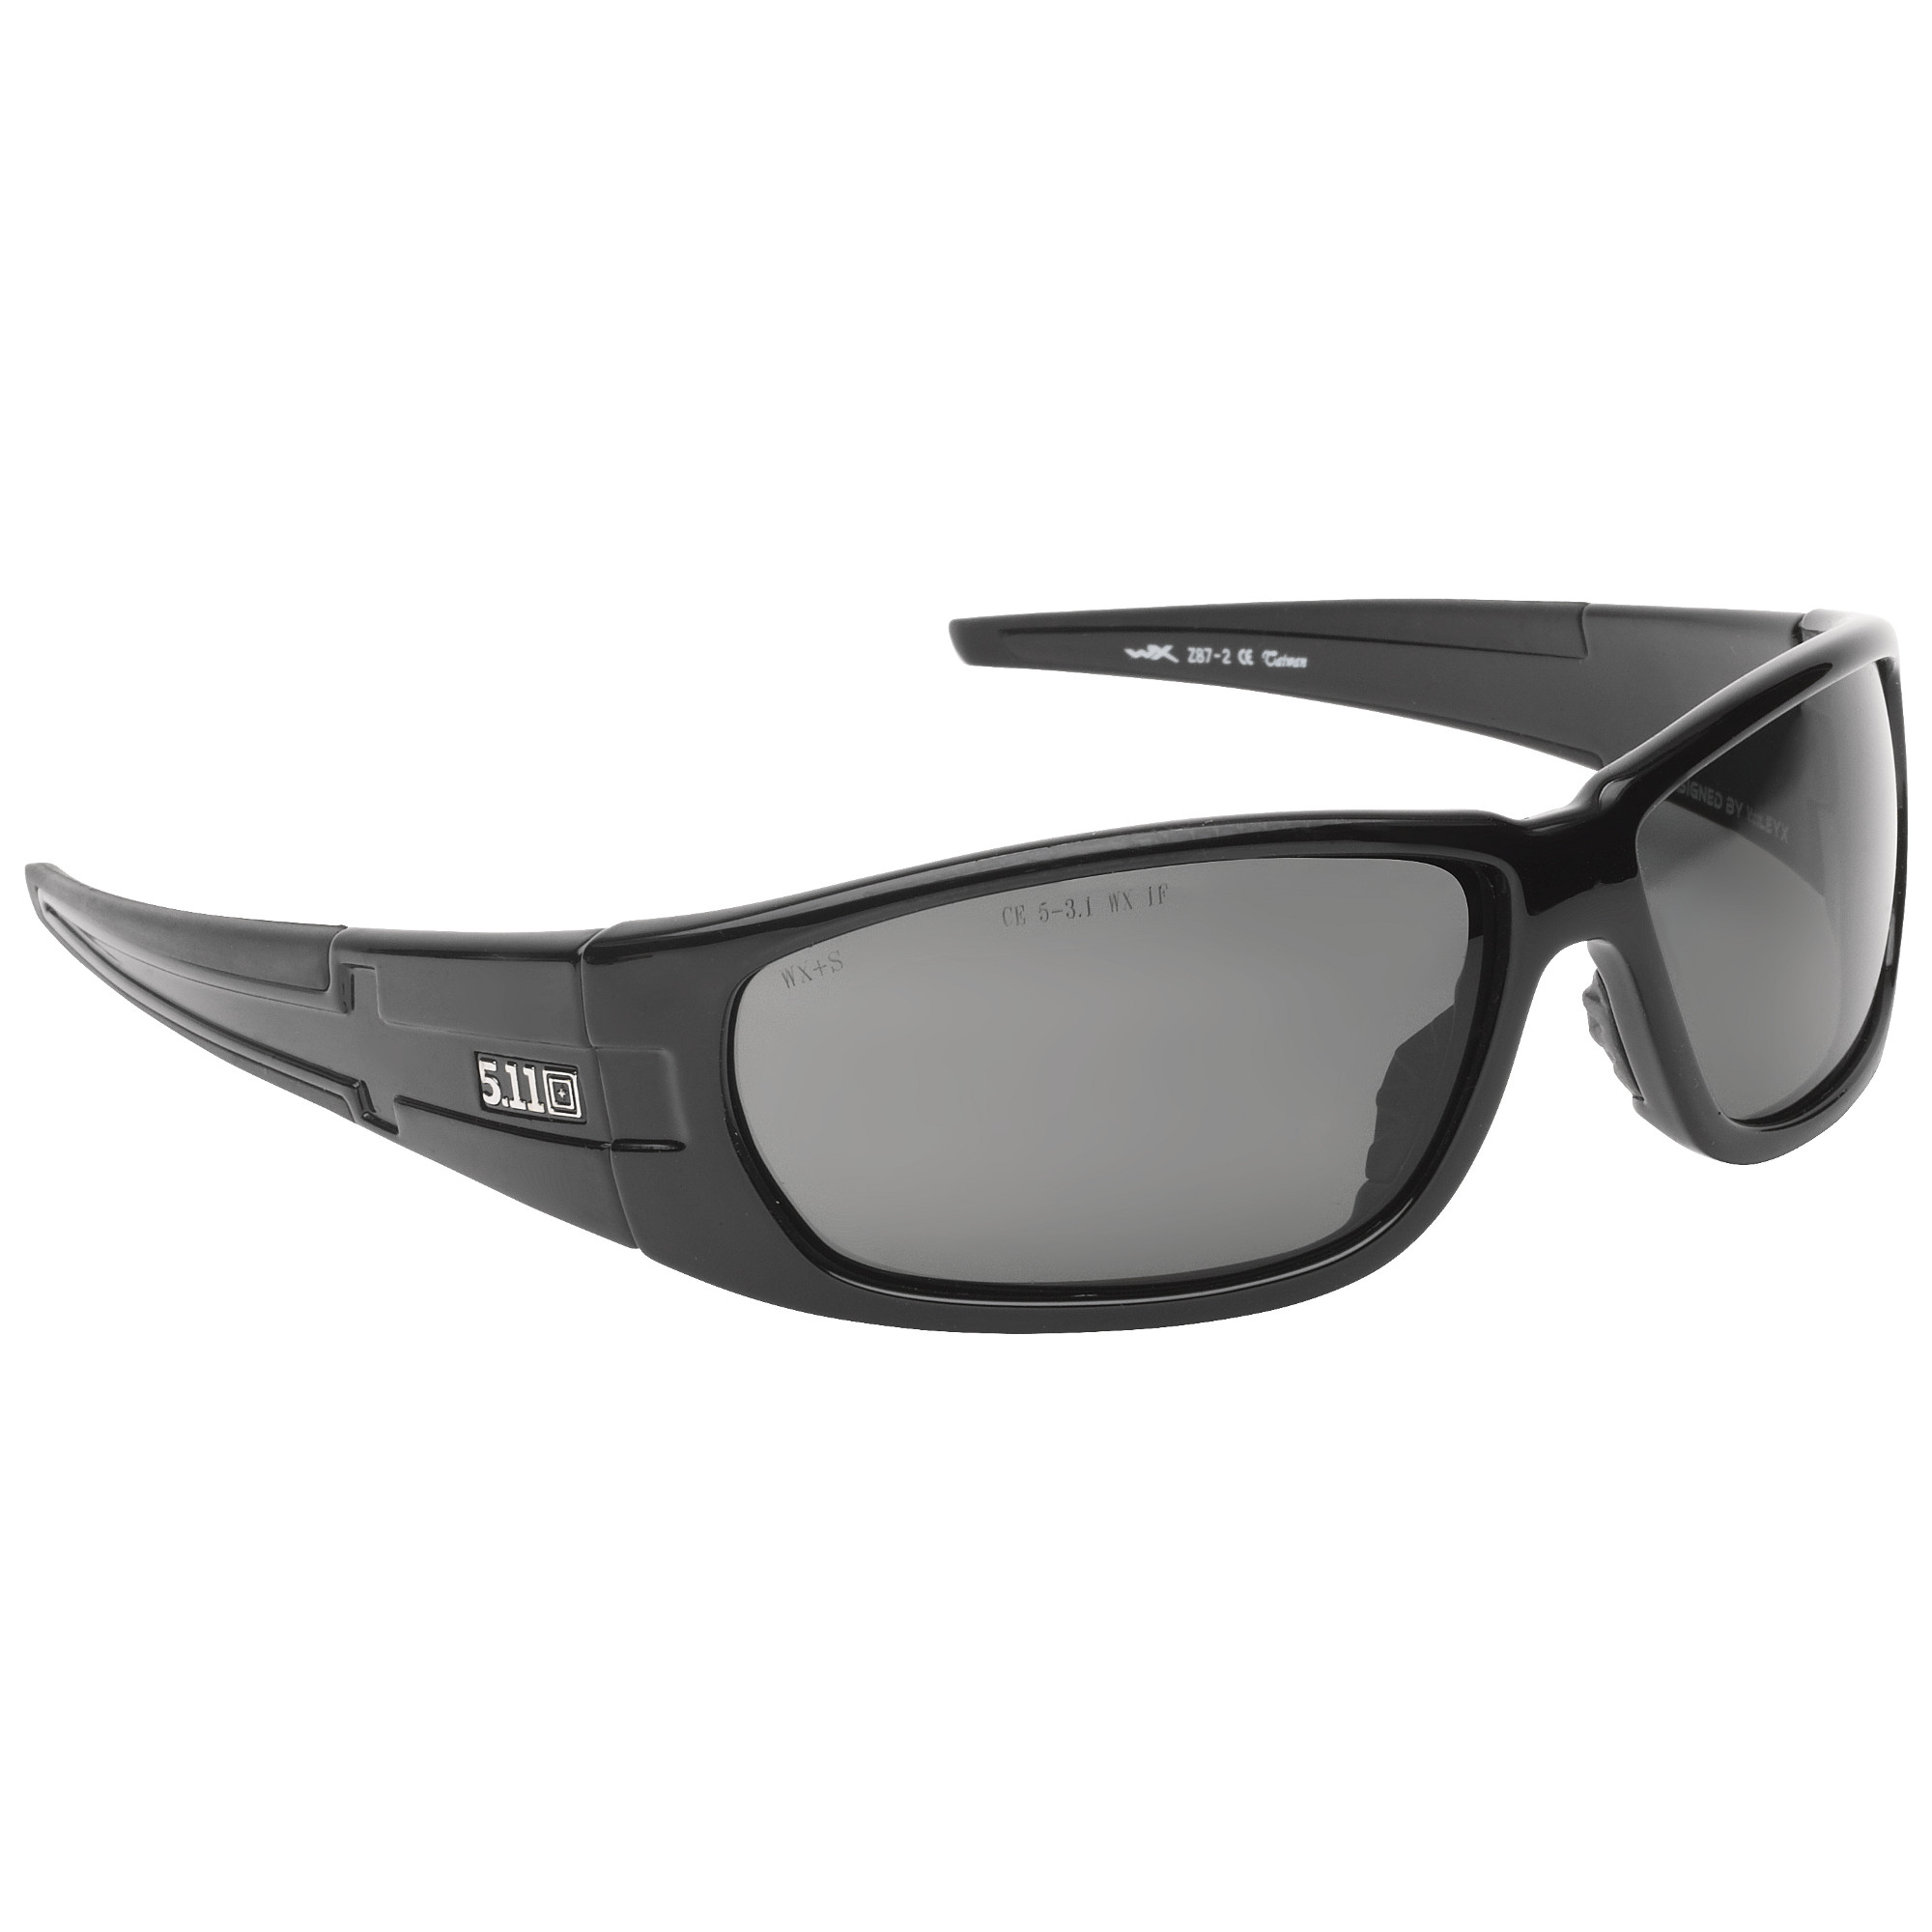 a4994601885 Tactical Sunglasses Polarized « One More Soul